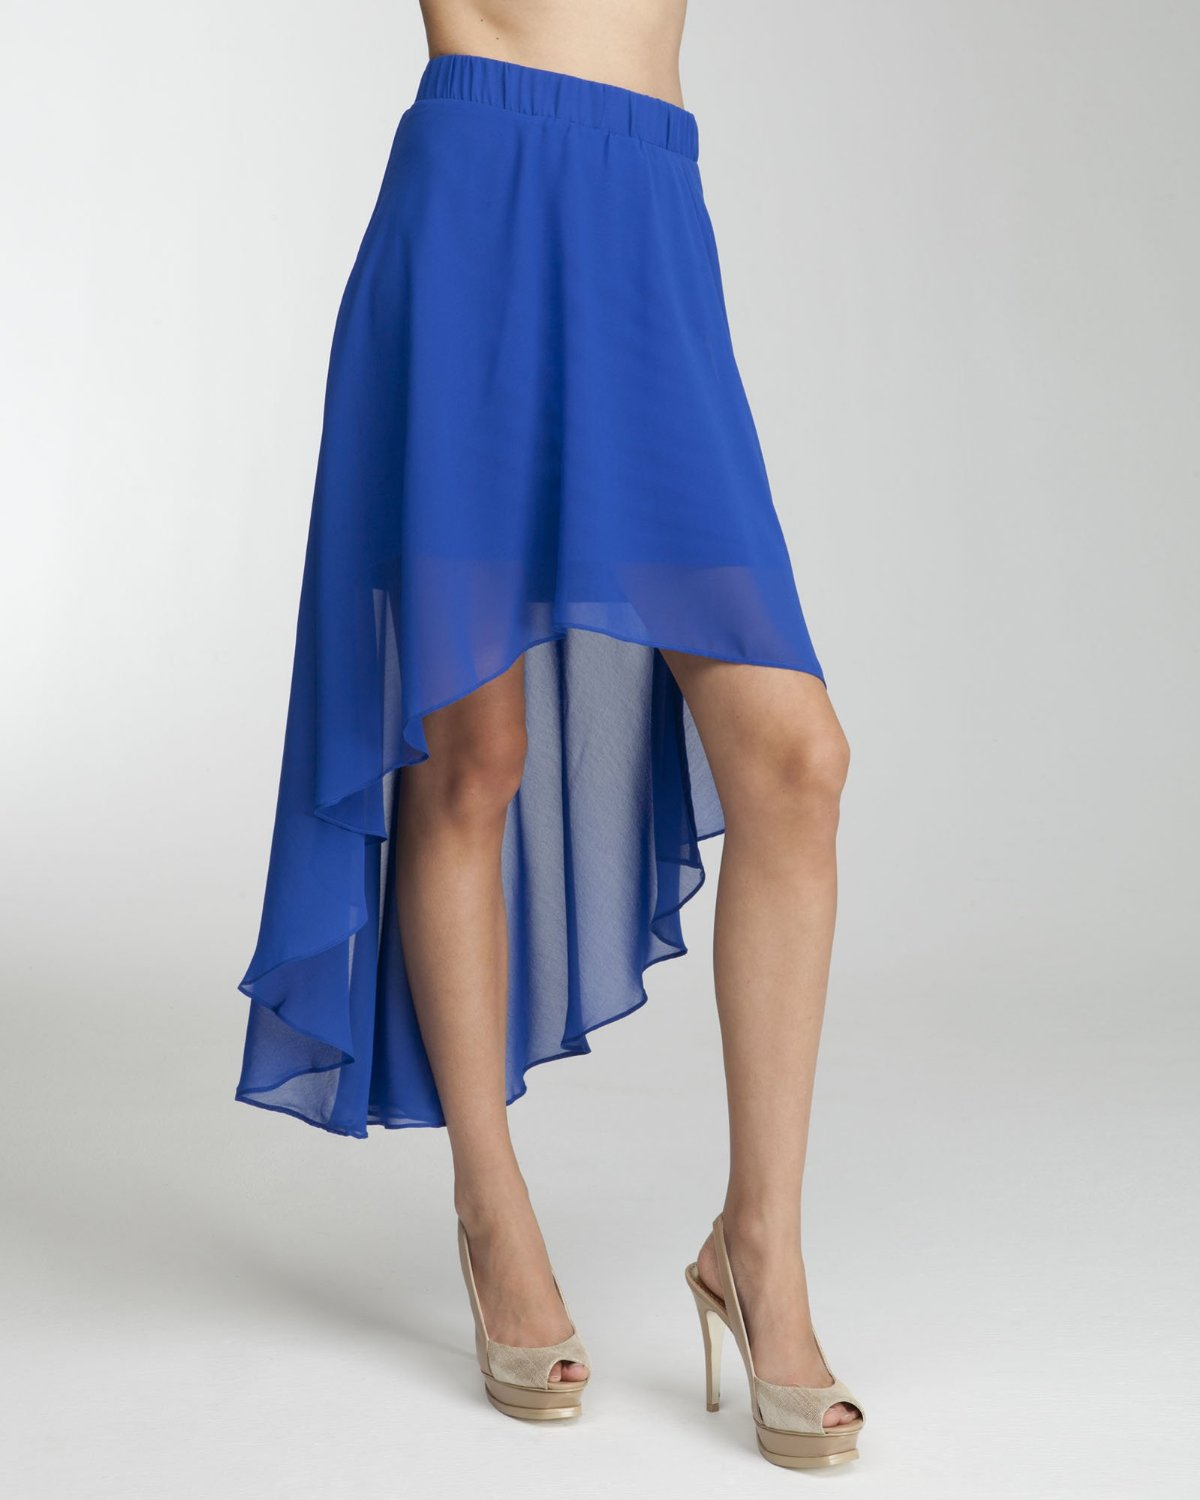 Bebe High Low Skirt @FASHIFY | @FASHIFY - A Miami Fashion Magazine, Blog, Shop, and More.